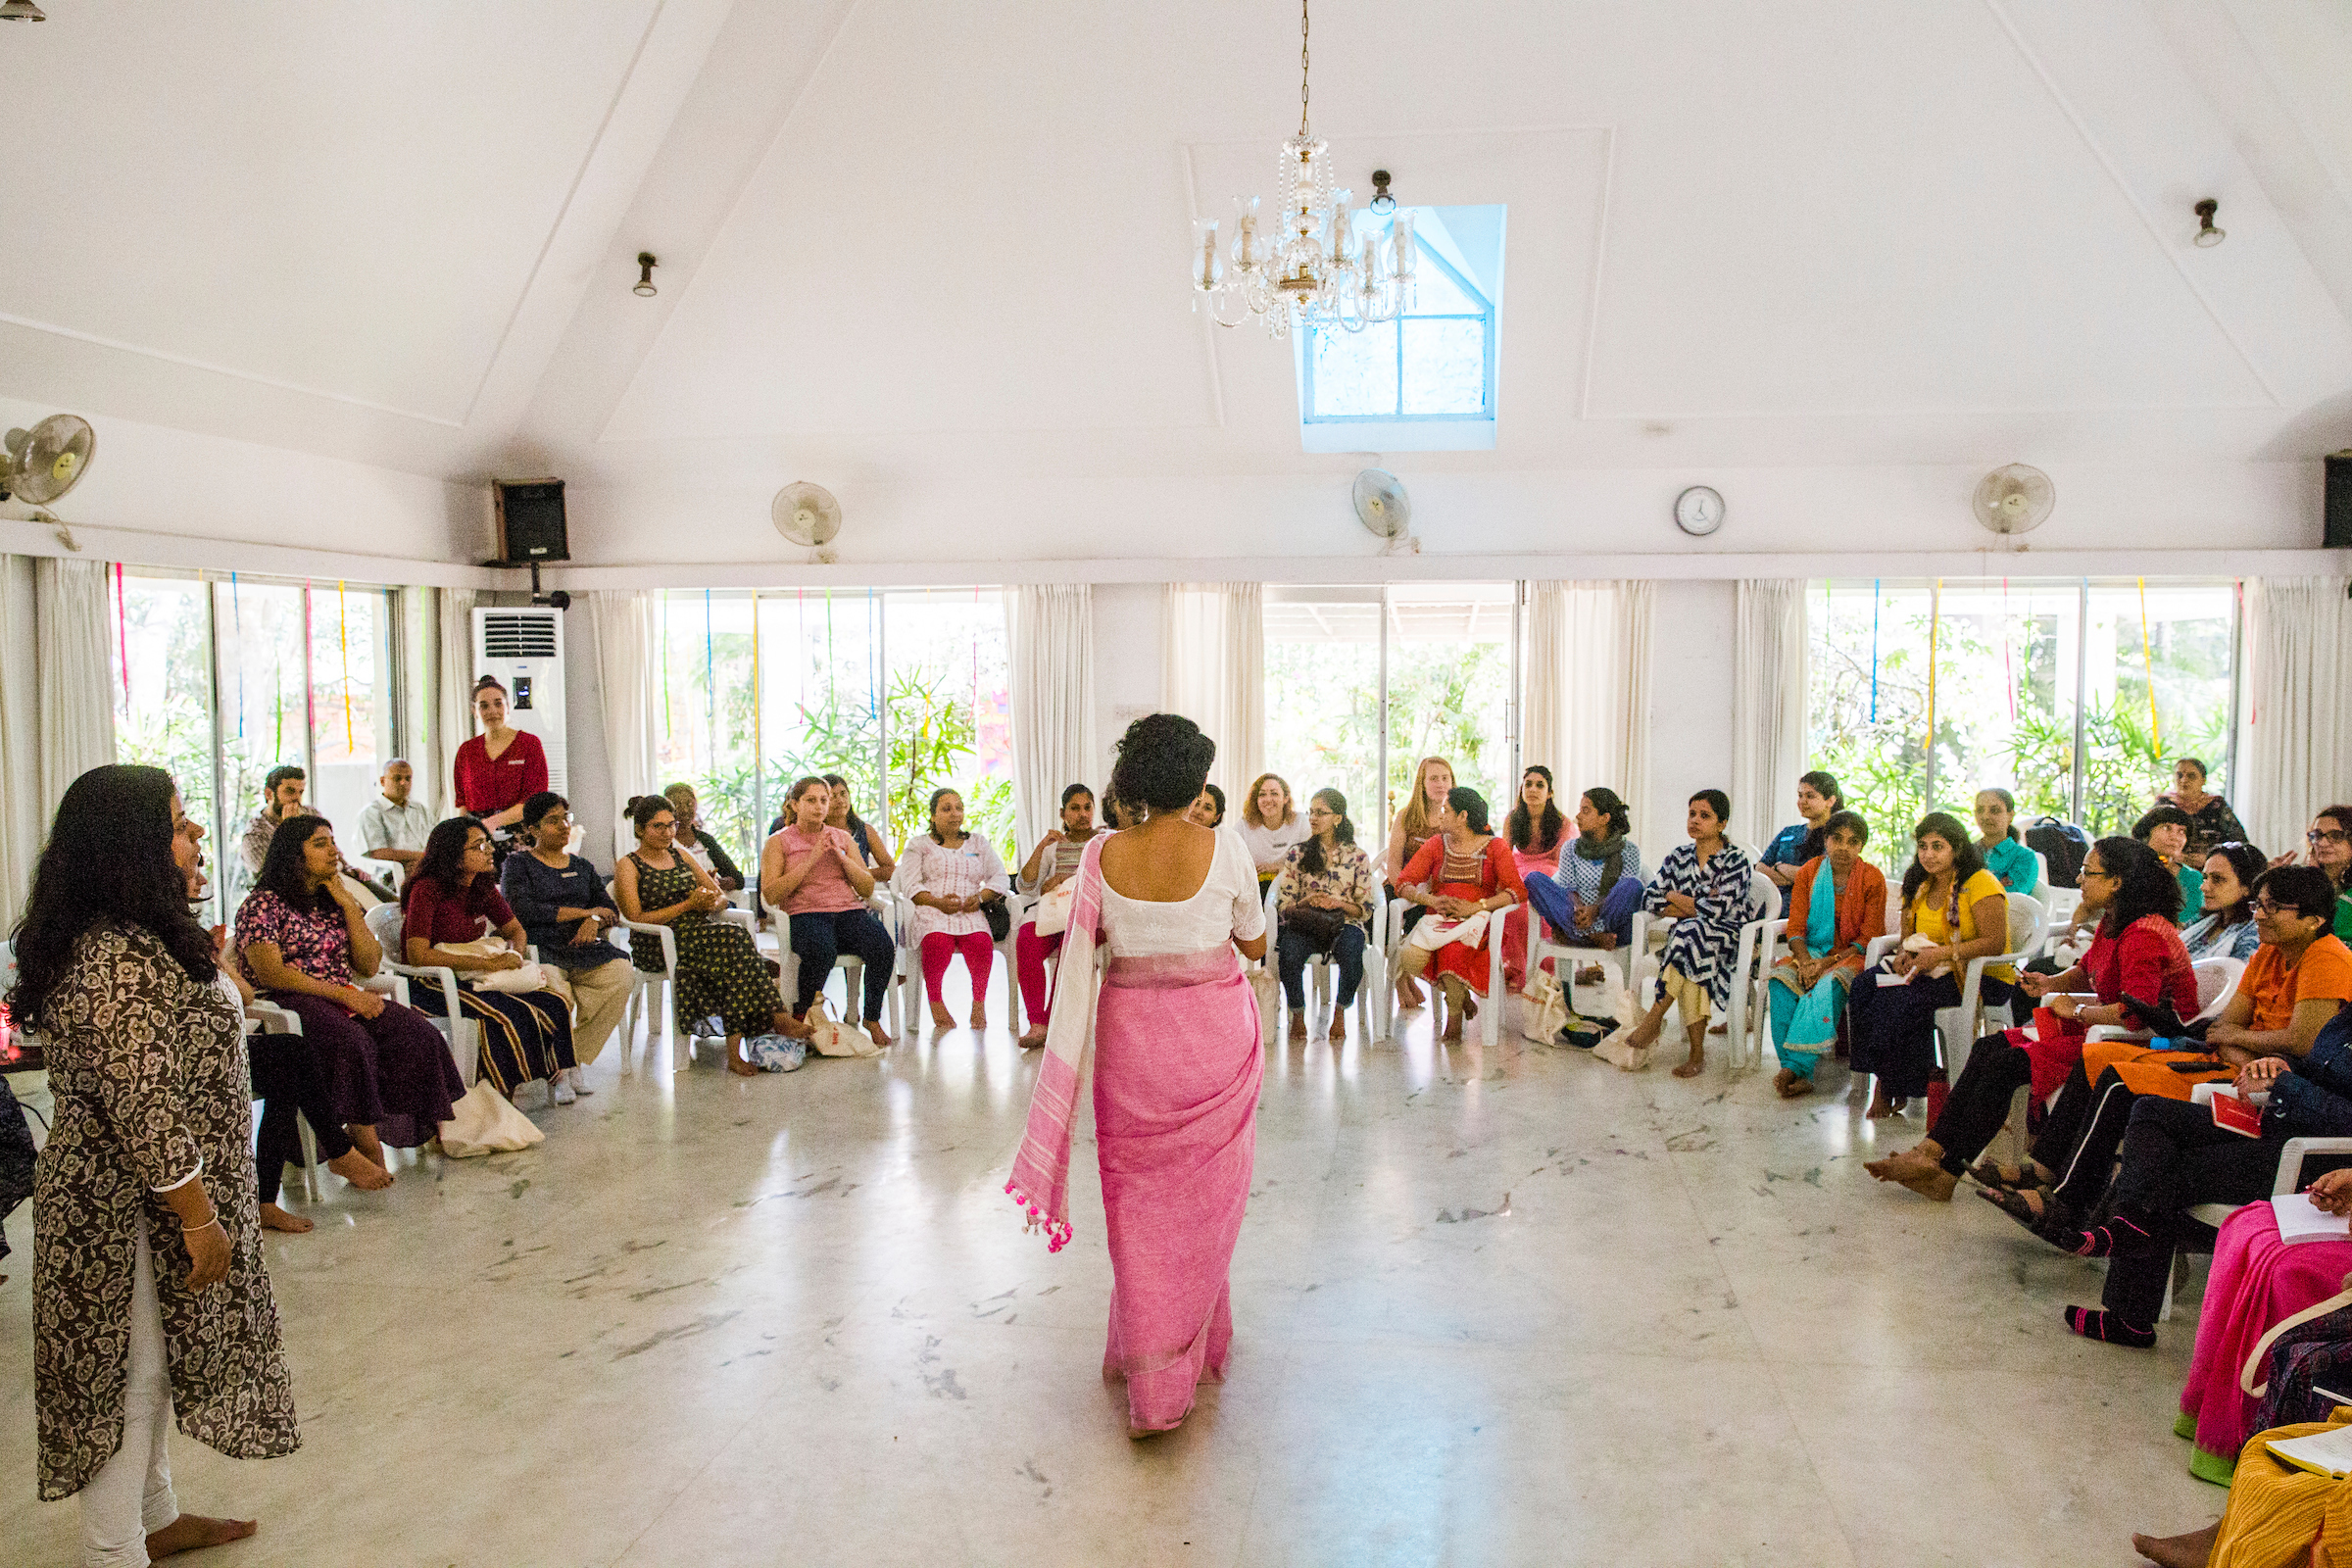 Preethi Herman addresses 30 new Changemakers, part of the She Creates Change program empowering women to start and lead social change campaigns across India.